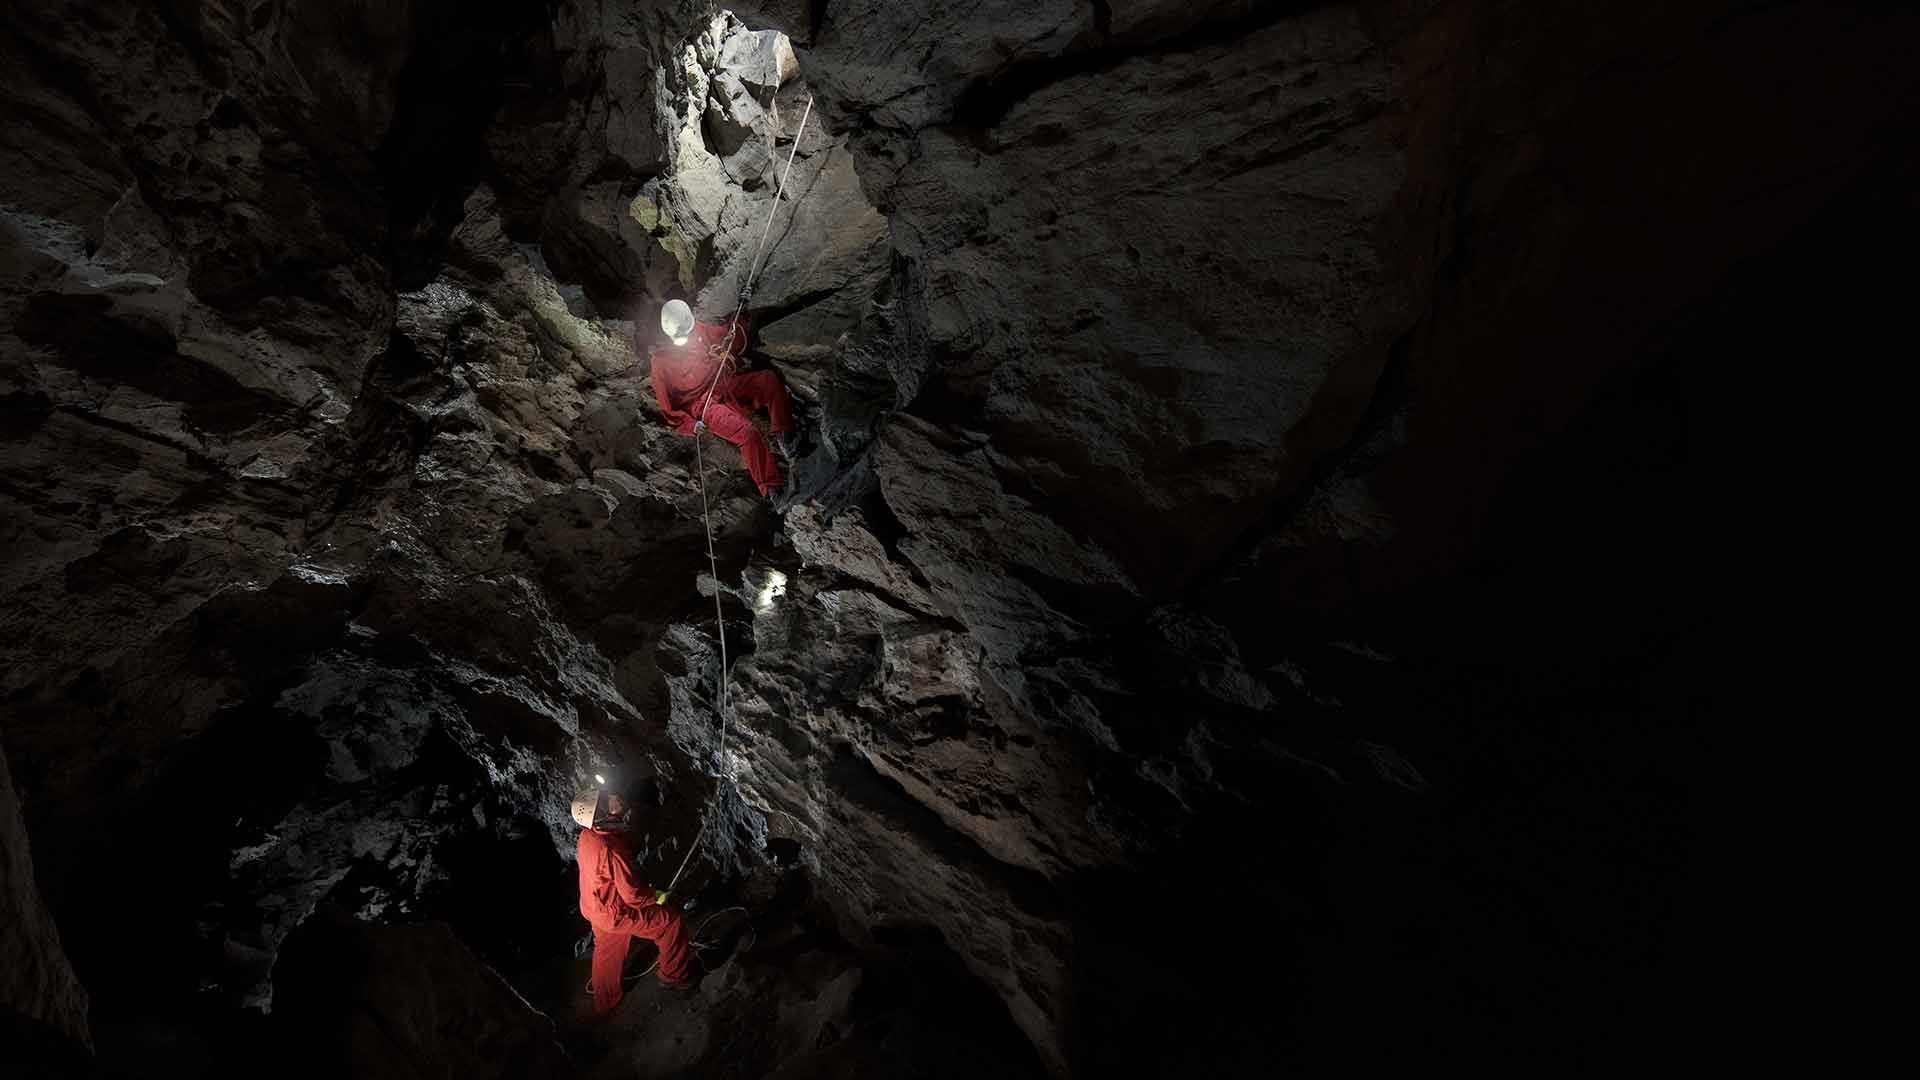 Cavers rappelling in Rat's Nest Cave on the Adventure Tour